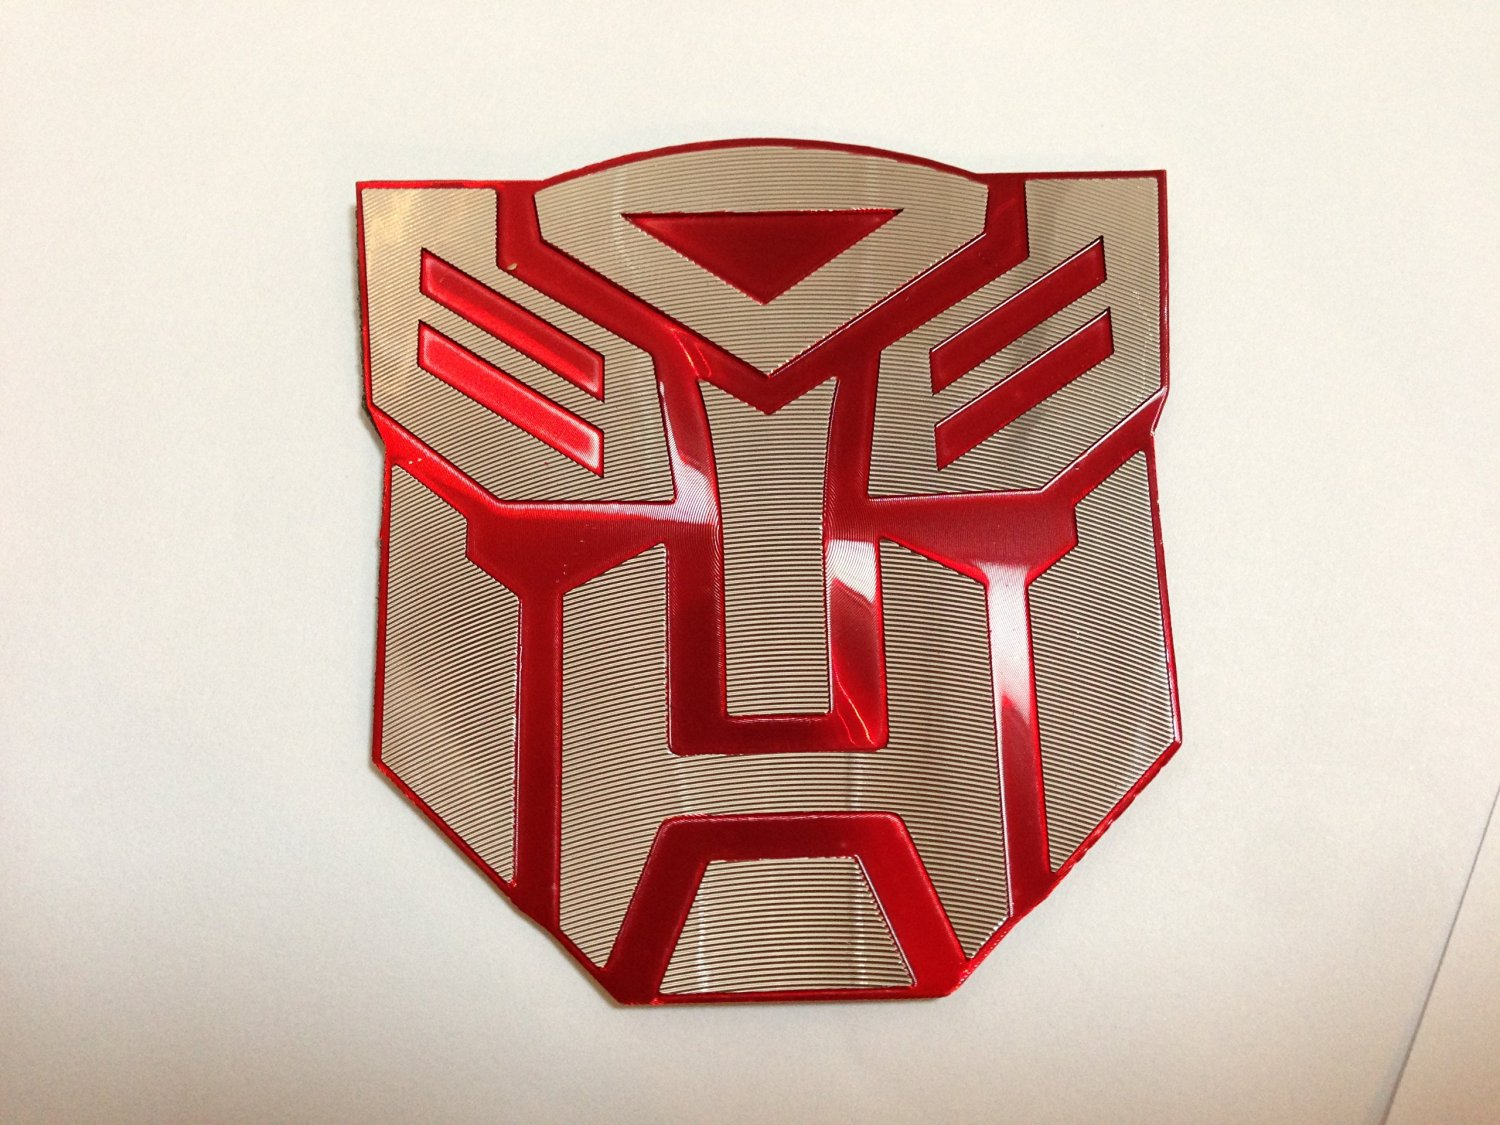 Cheap Autobot Badge For Car Find Autobot Badge For Car Deals On